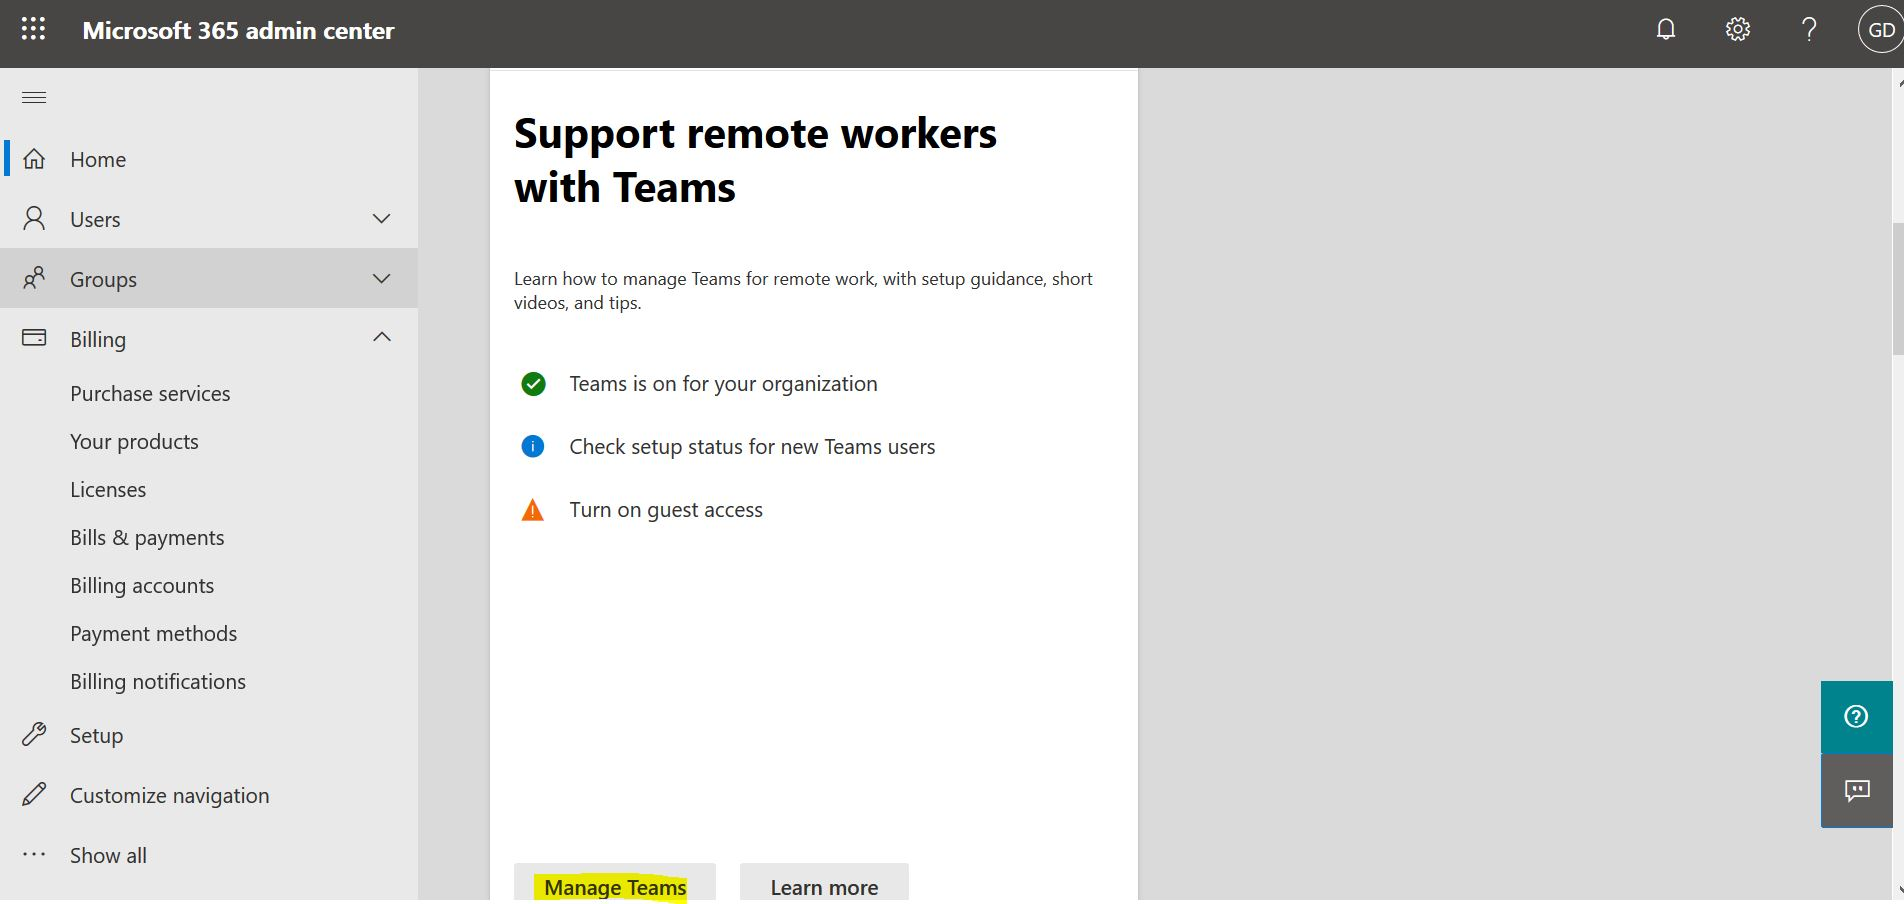 Support remote workers with ‎Teams‎ in Office 365 - Microsoft 365 admin center